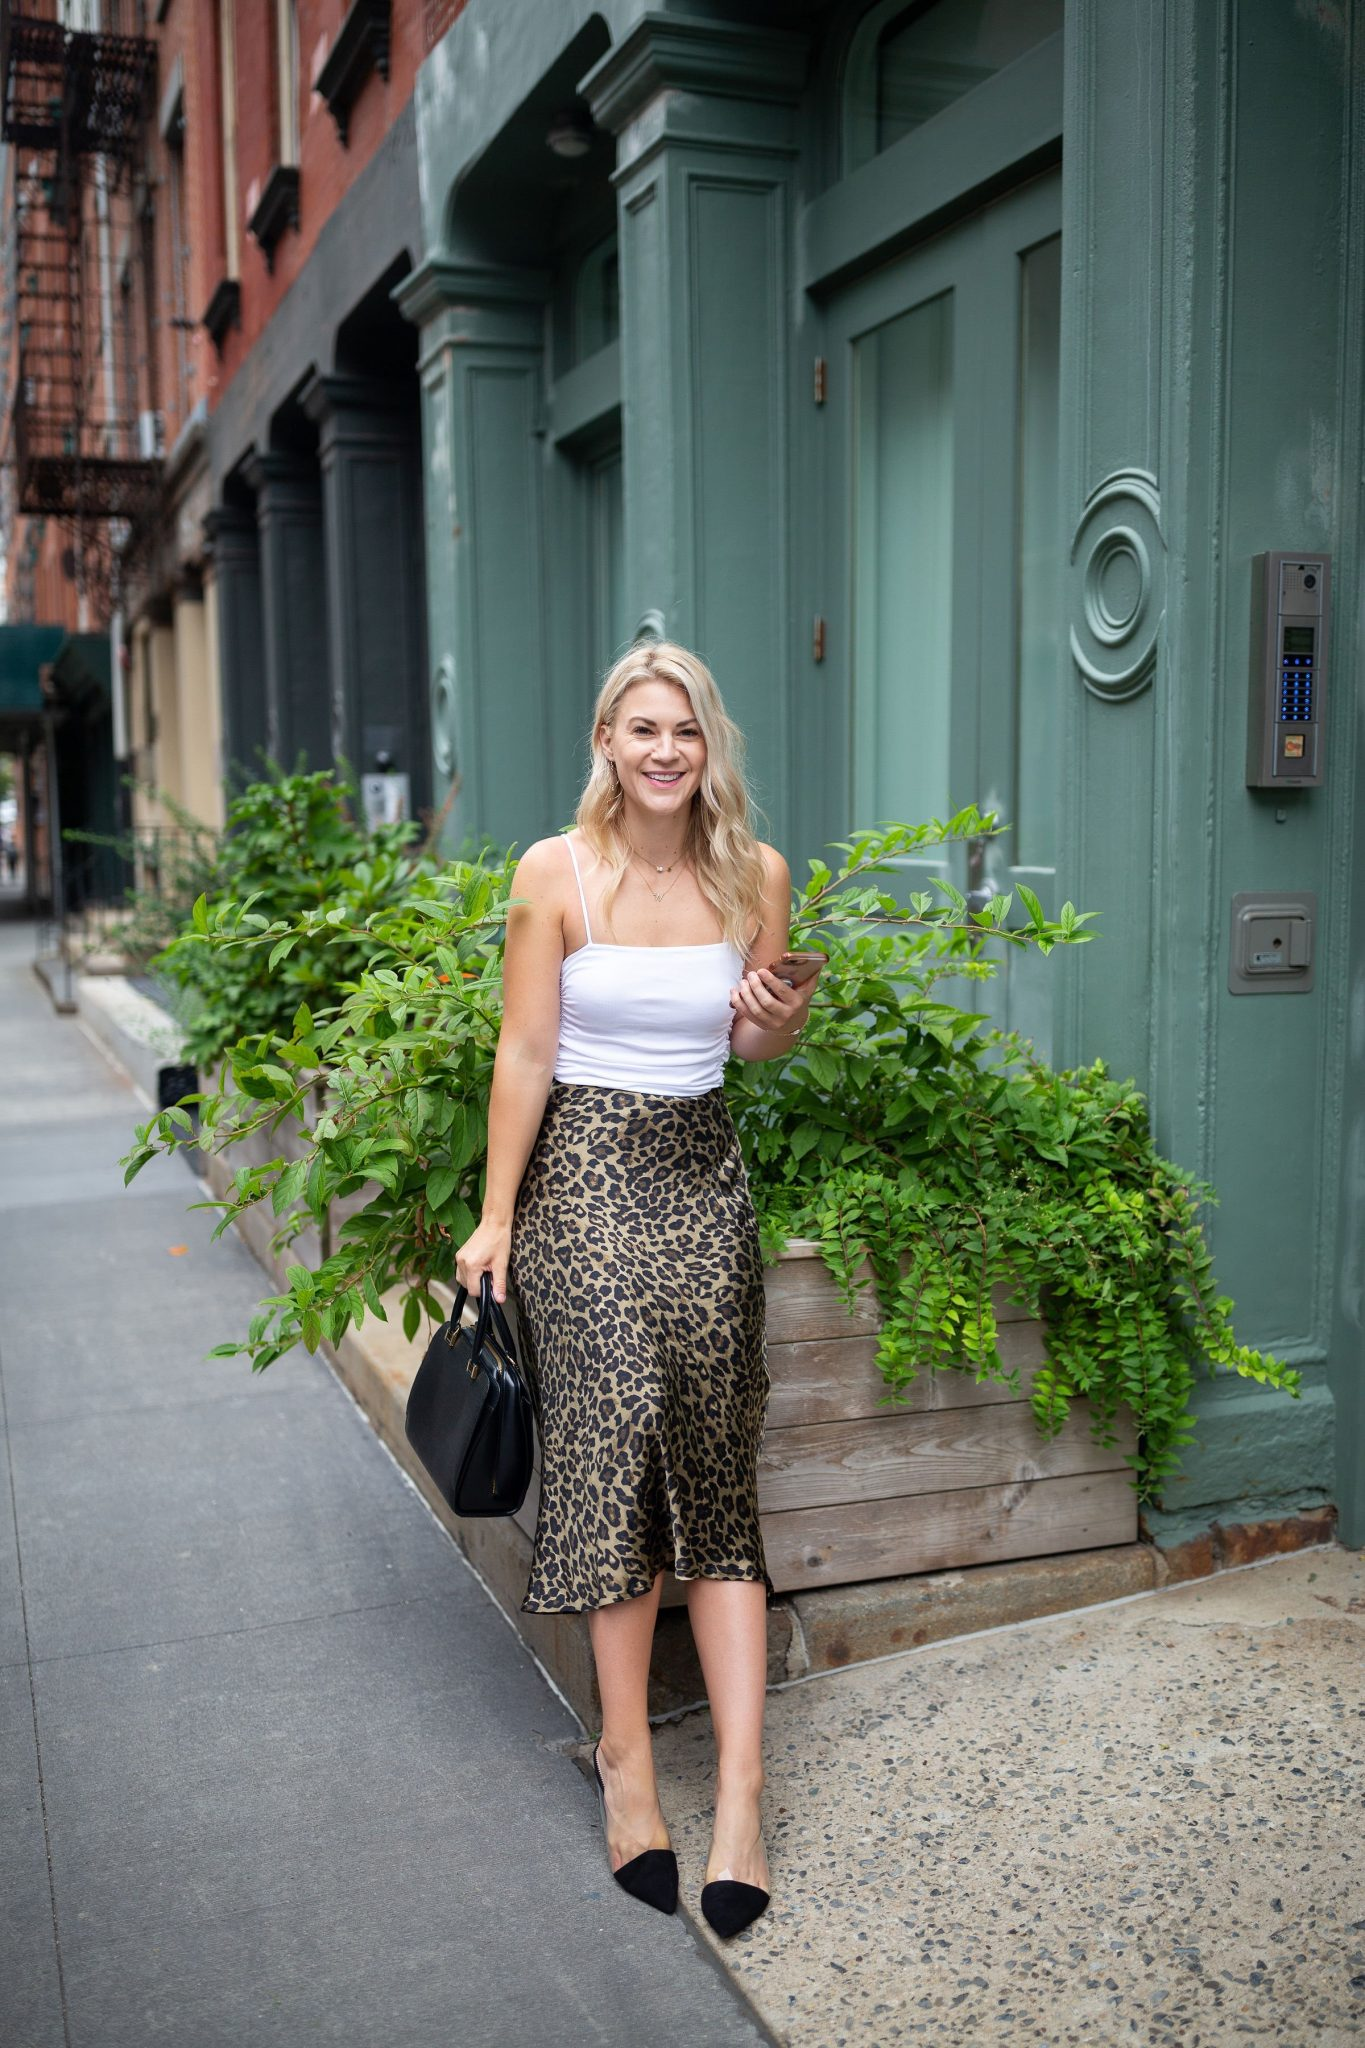 Leopard Skirt by popular Seattle tall fashion blog, Whit Wanders: image of a woman sitting on a garden box in front of a green building and wearing a Free People Bodysuit, Zara Leopard Skirt, Zara Black Heels, and holding Louis Vuitton Tote.